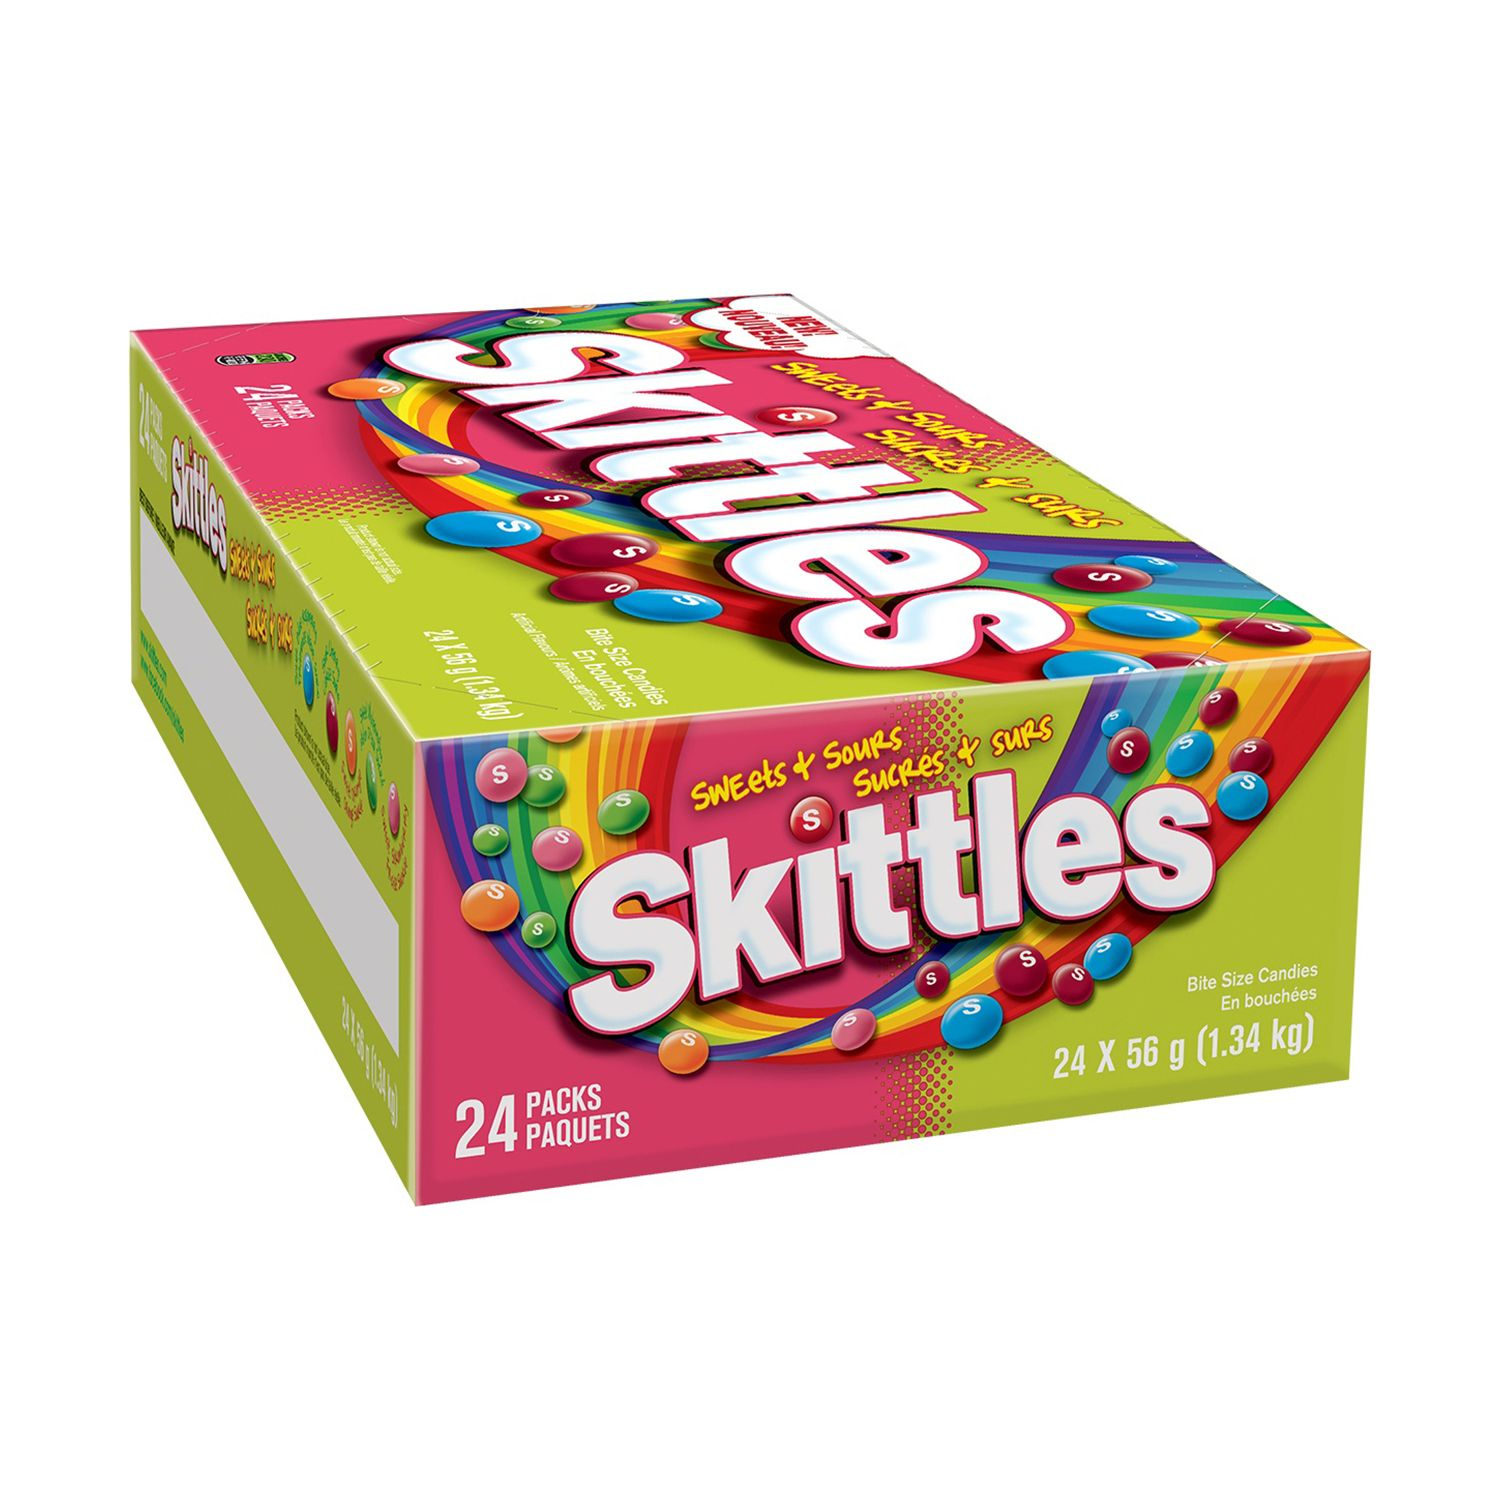 Skittles Sweets and Sours Candy (2 oz., 24 ct.)